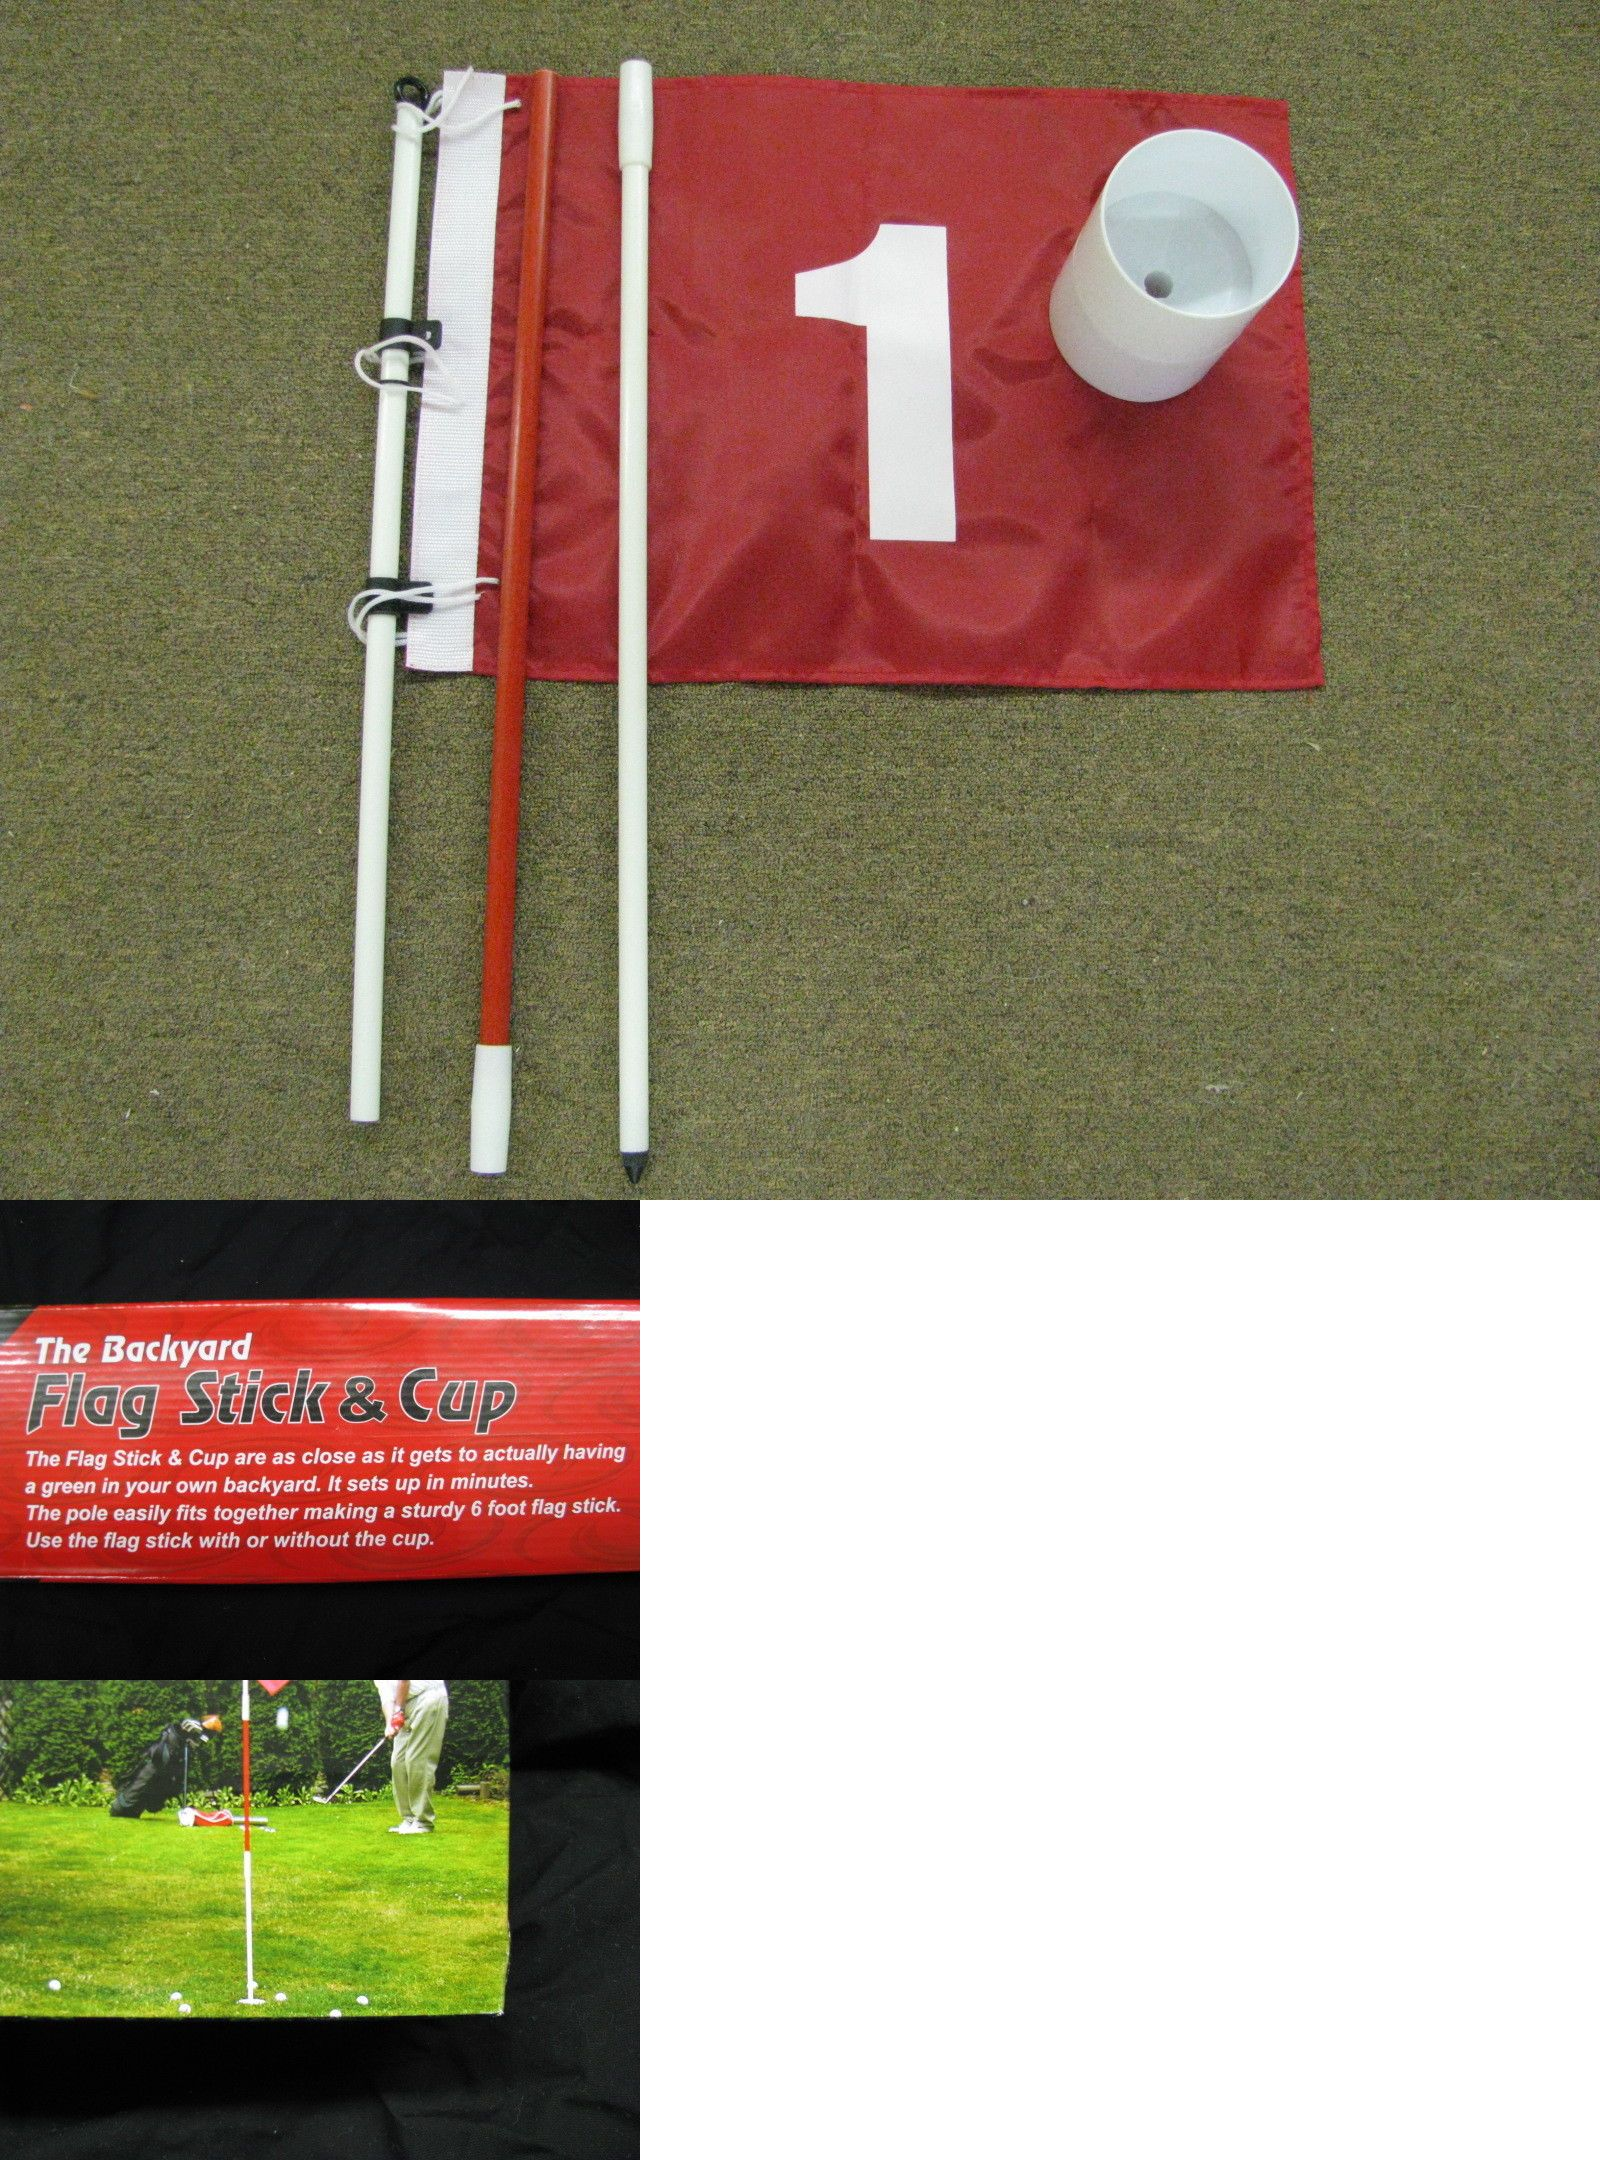 putting greens and aids 36234 backyard flag stick pole and cup